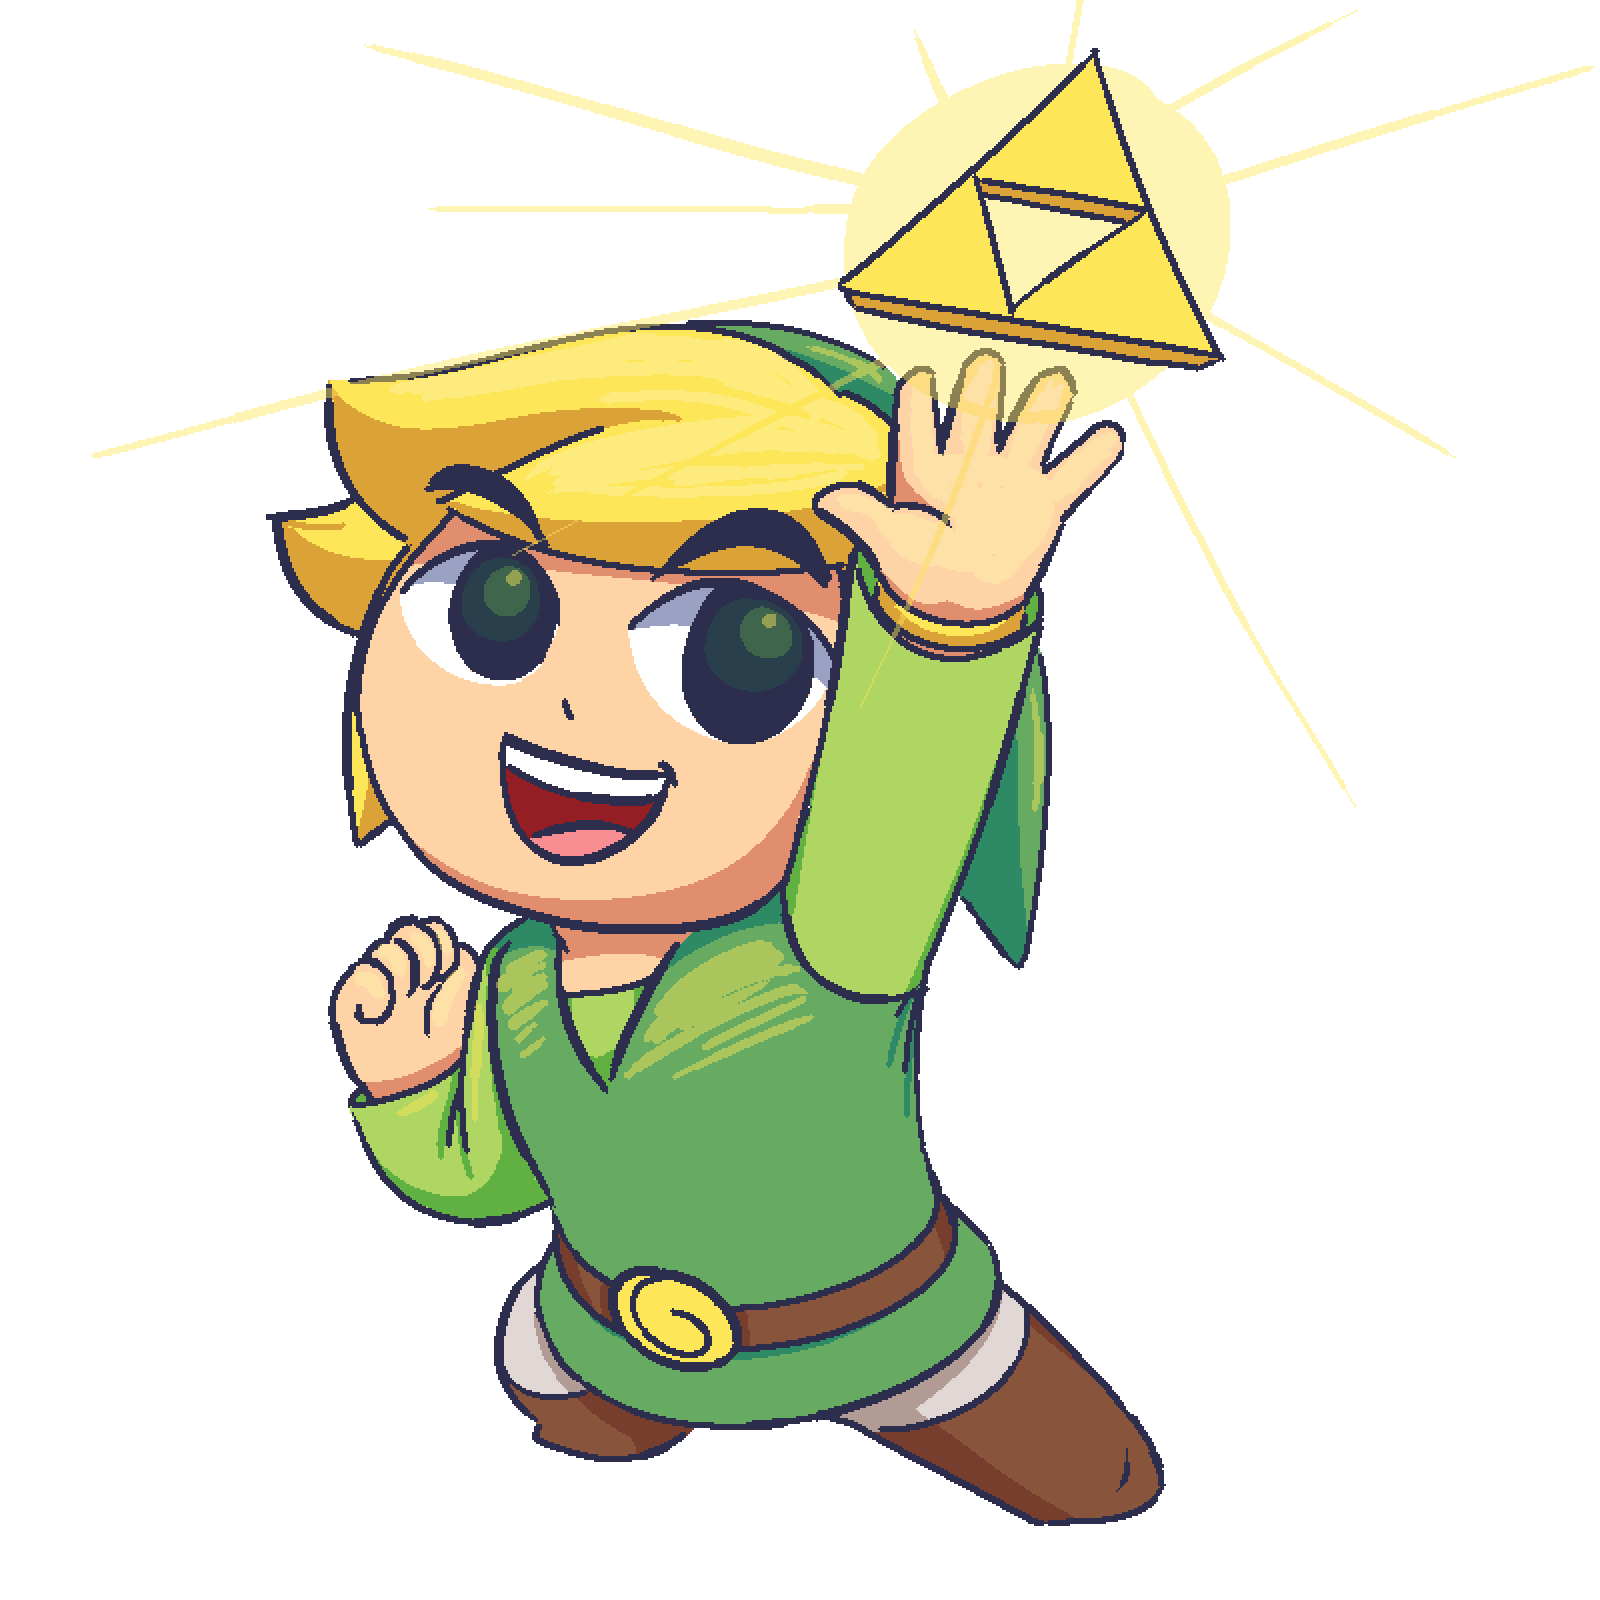 Toon Link gets an item